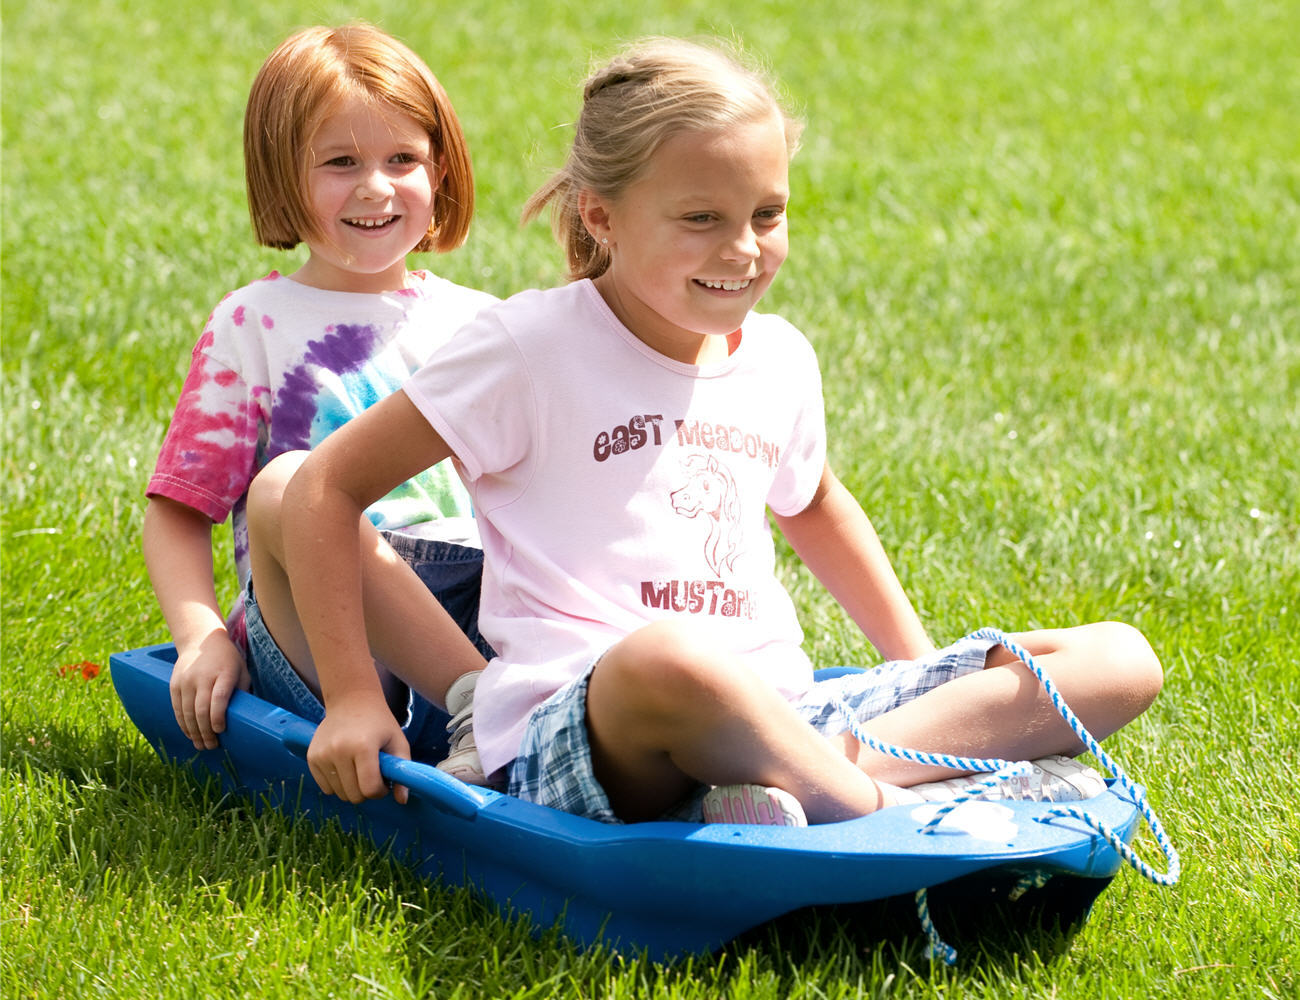 SLICER All Season Sled – Go Sledding With or Without Snow